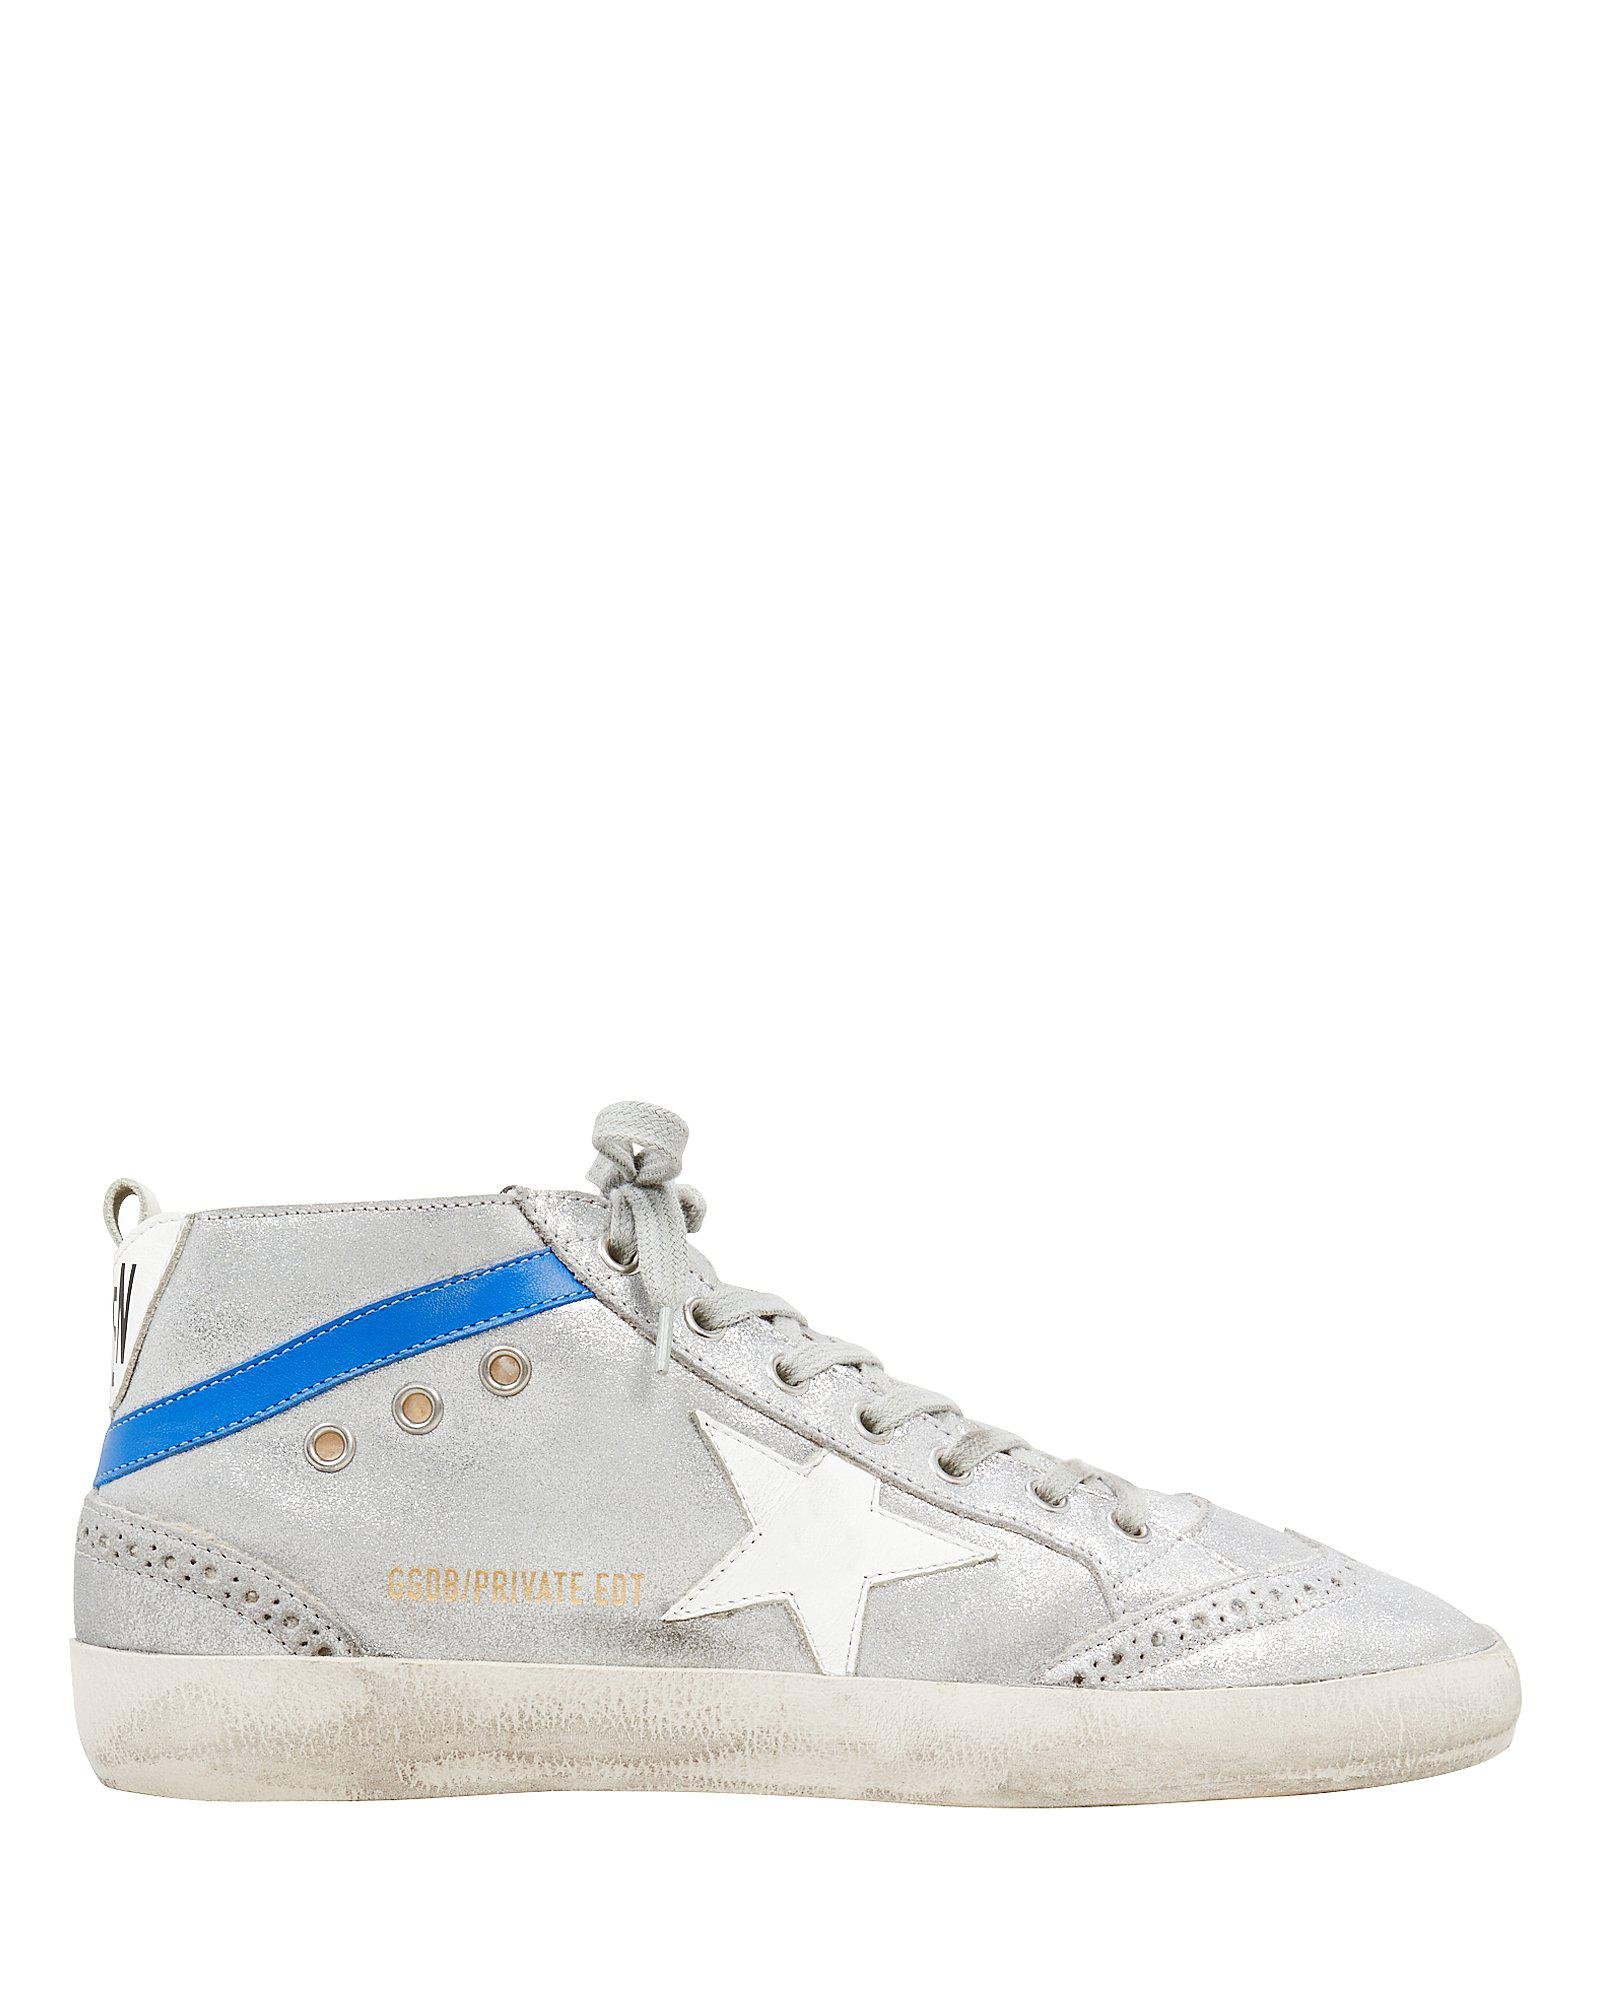 bb01628799c5 Golden Goose Deluxe Brand. Women s Blue Mid Star Shearling Suede Silver  Sneakers